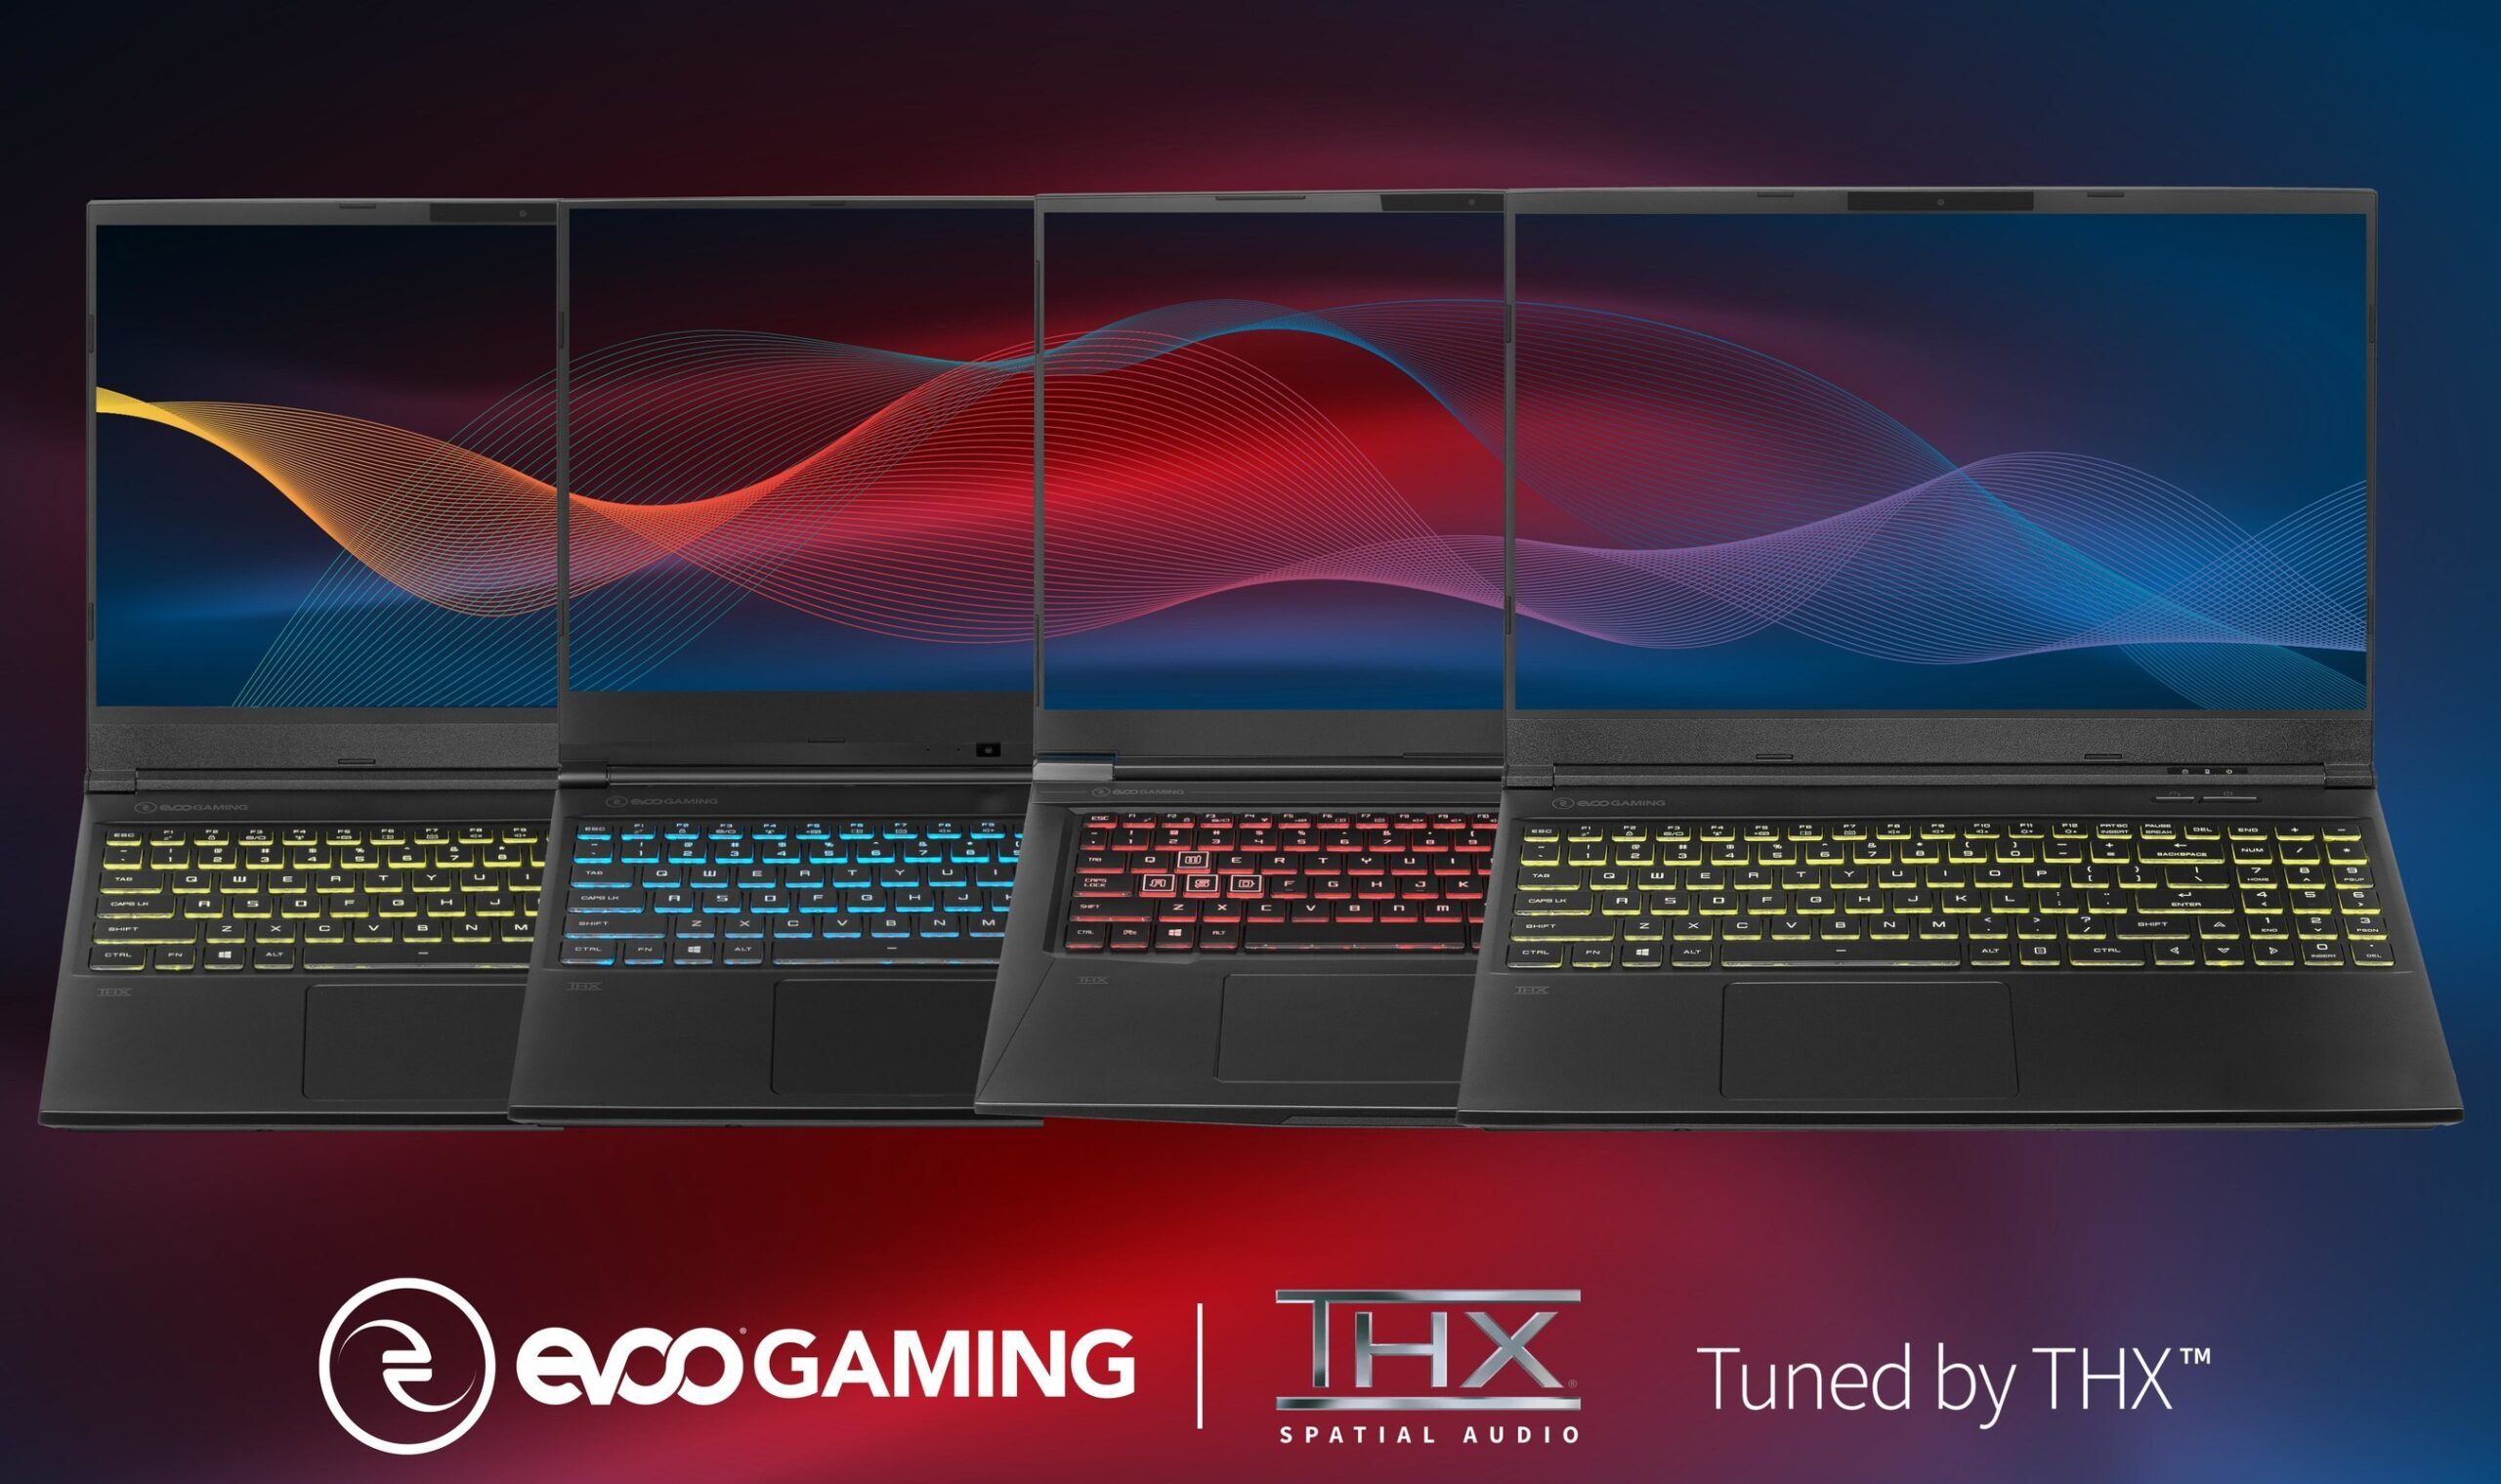 EVOO Gaming laptops featuring THX Spatial Audio and Tuned By THX